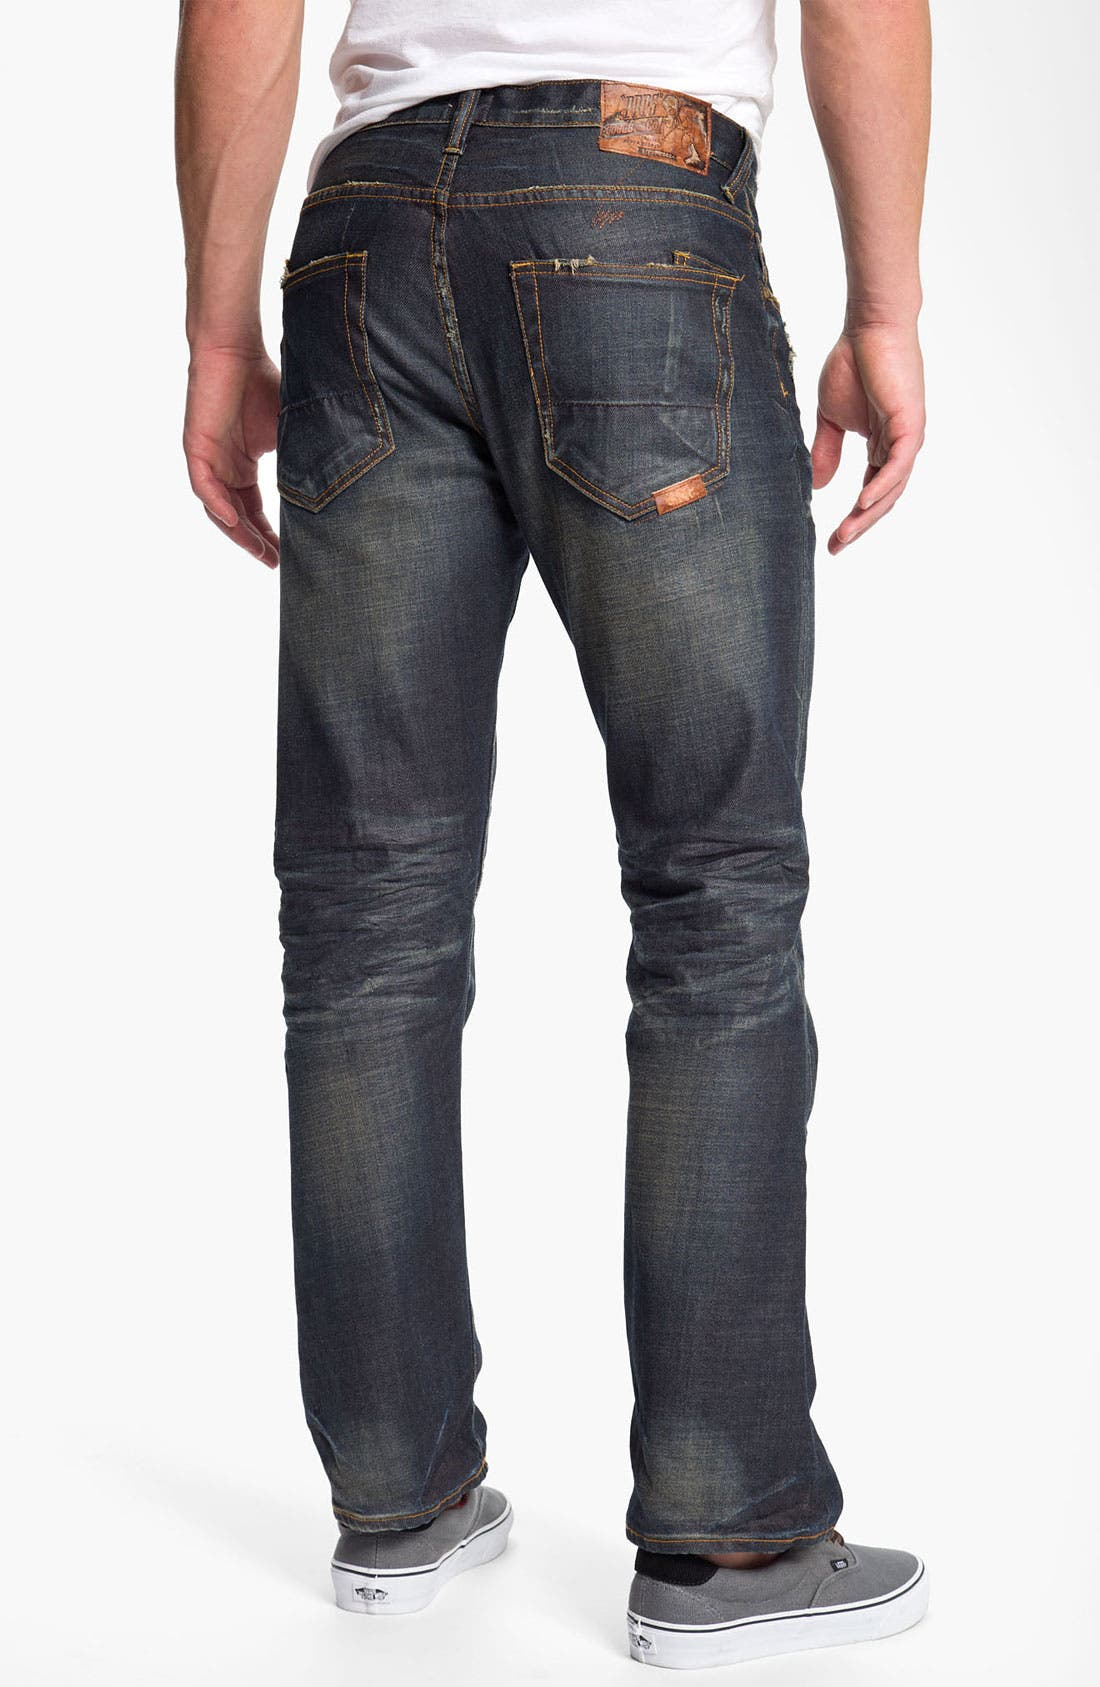 Alternate Image 1 Selected - PRPS 'Barracuda' Straight Leg Jeans